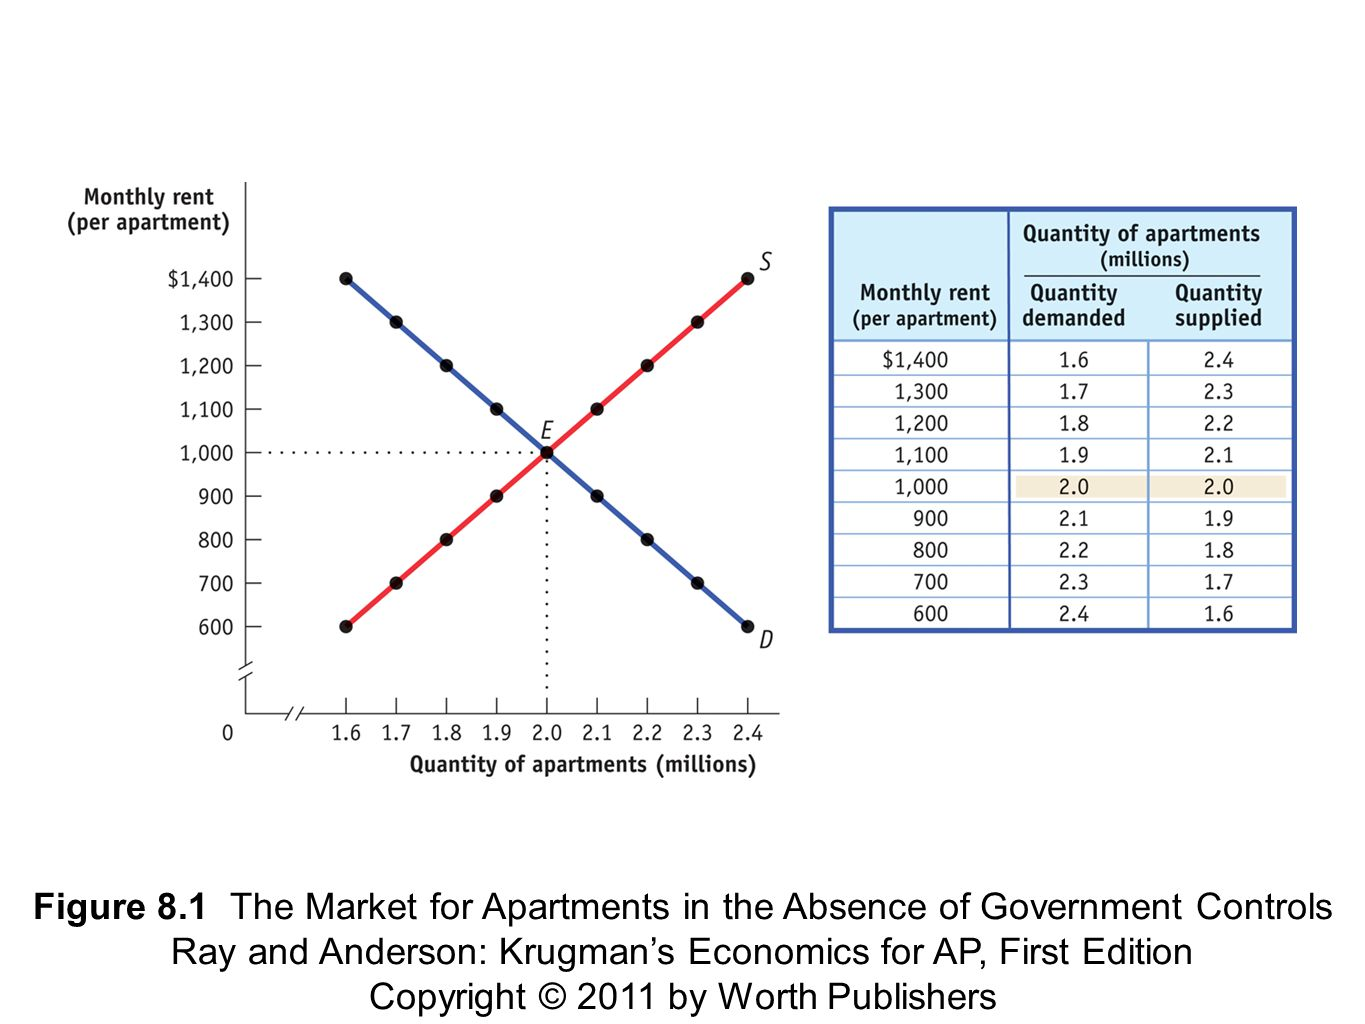 Figure 8.1 The Market for Apartments in the Absence of Government Controls Ray and Anderson: Krugman's Economics for AP, First Edition Copyright © 2011 by Worth Publishers